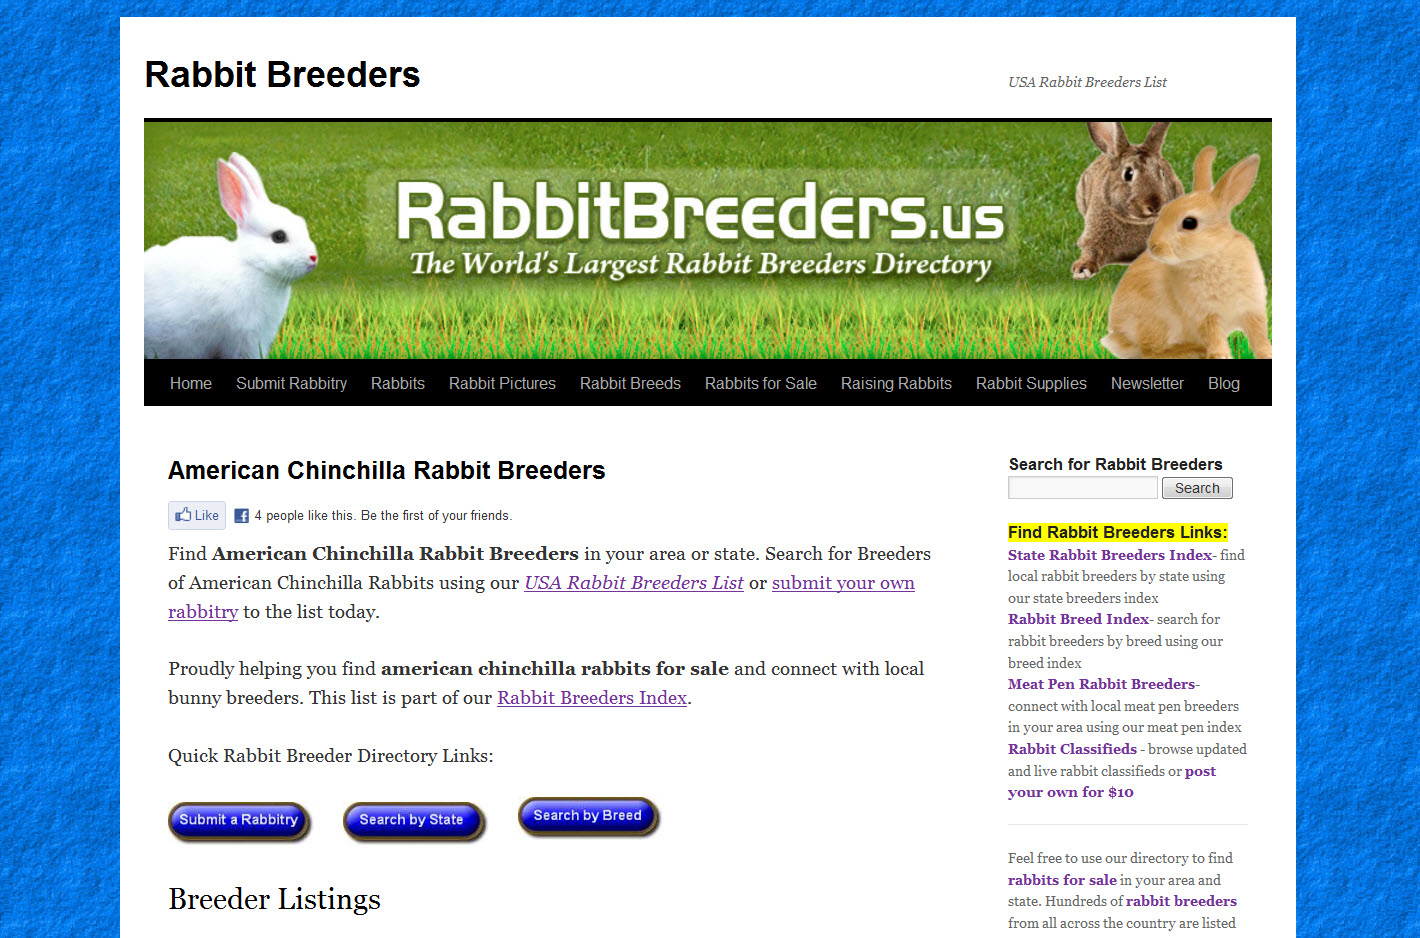 American Chinchilla Rabbits for Sale